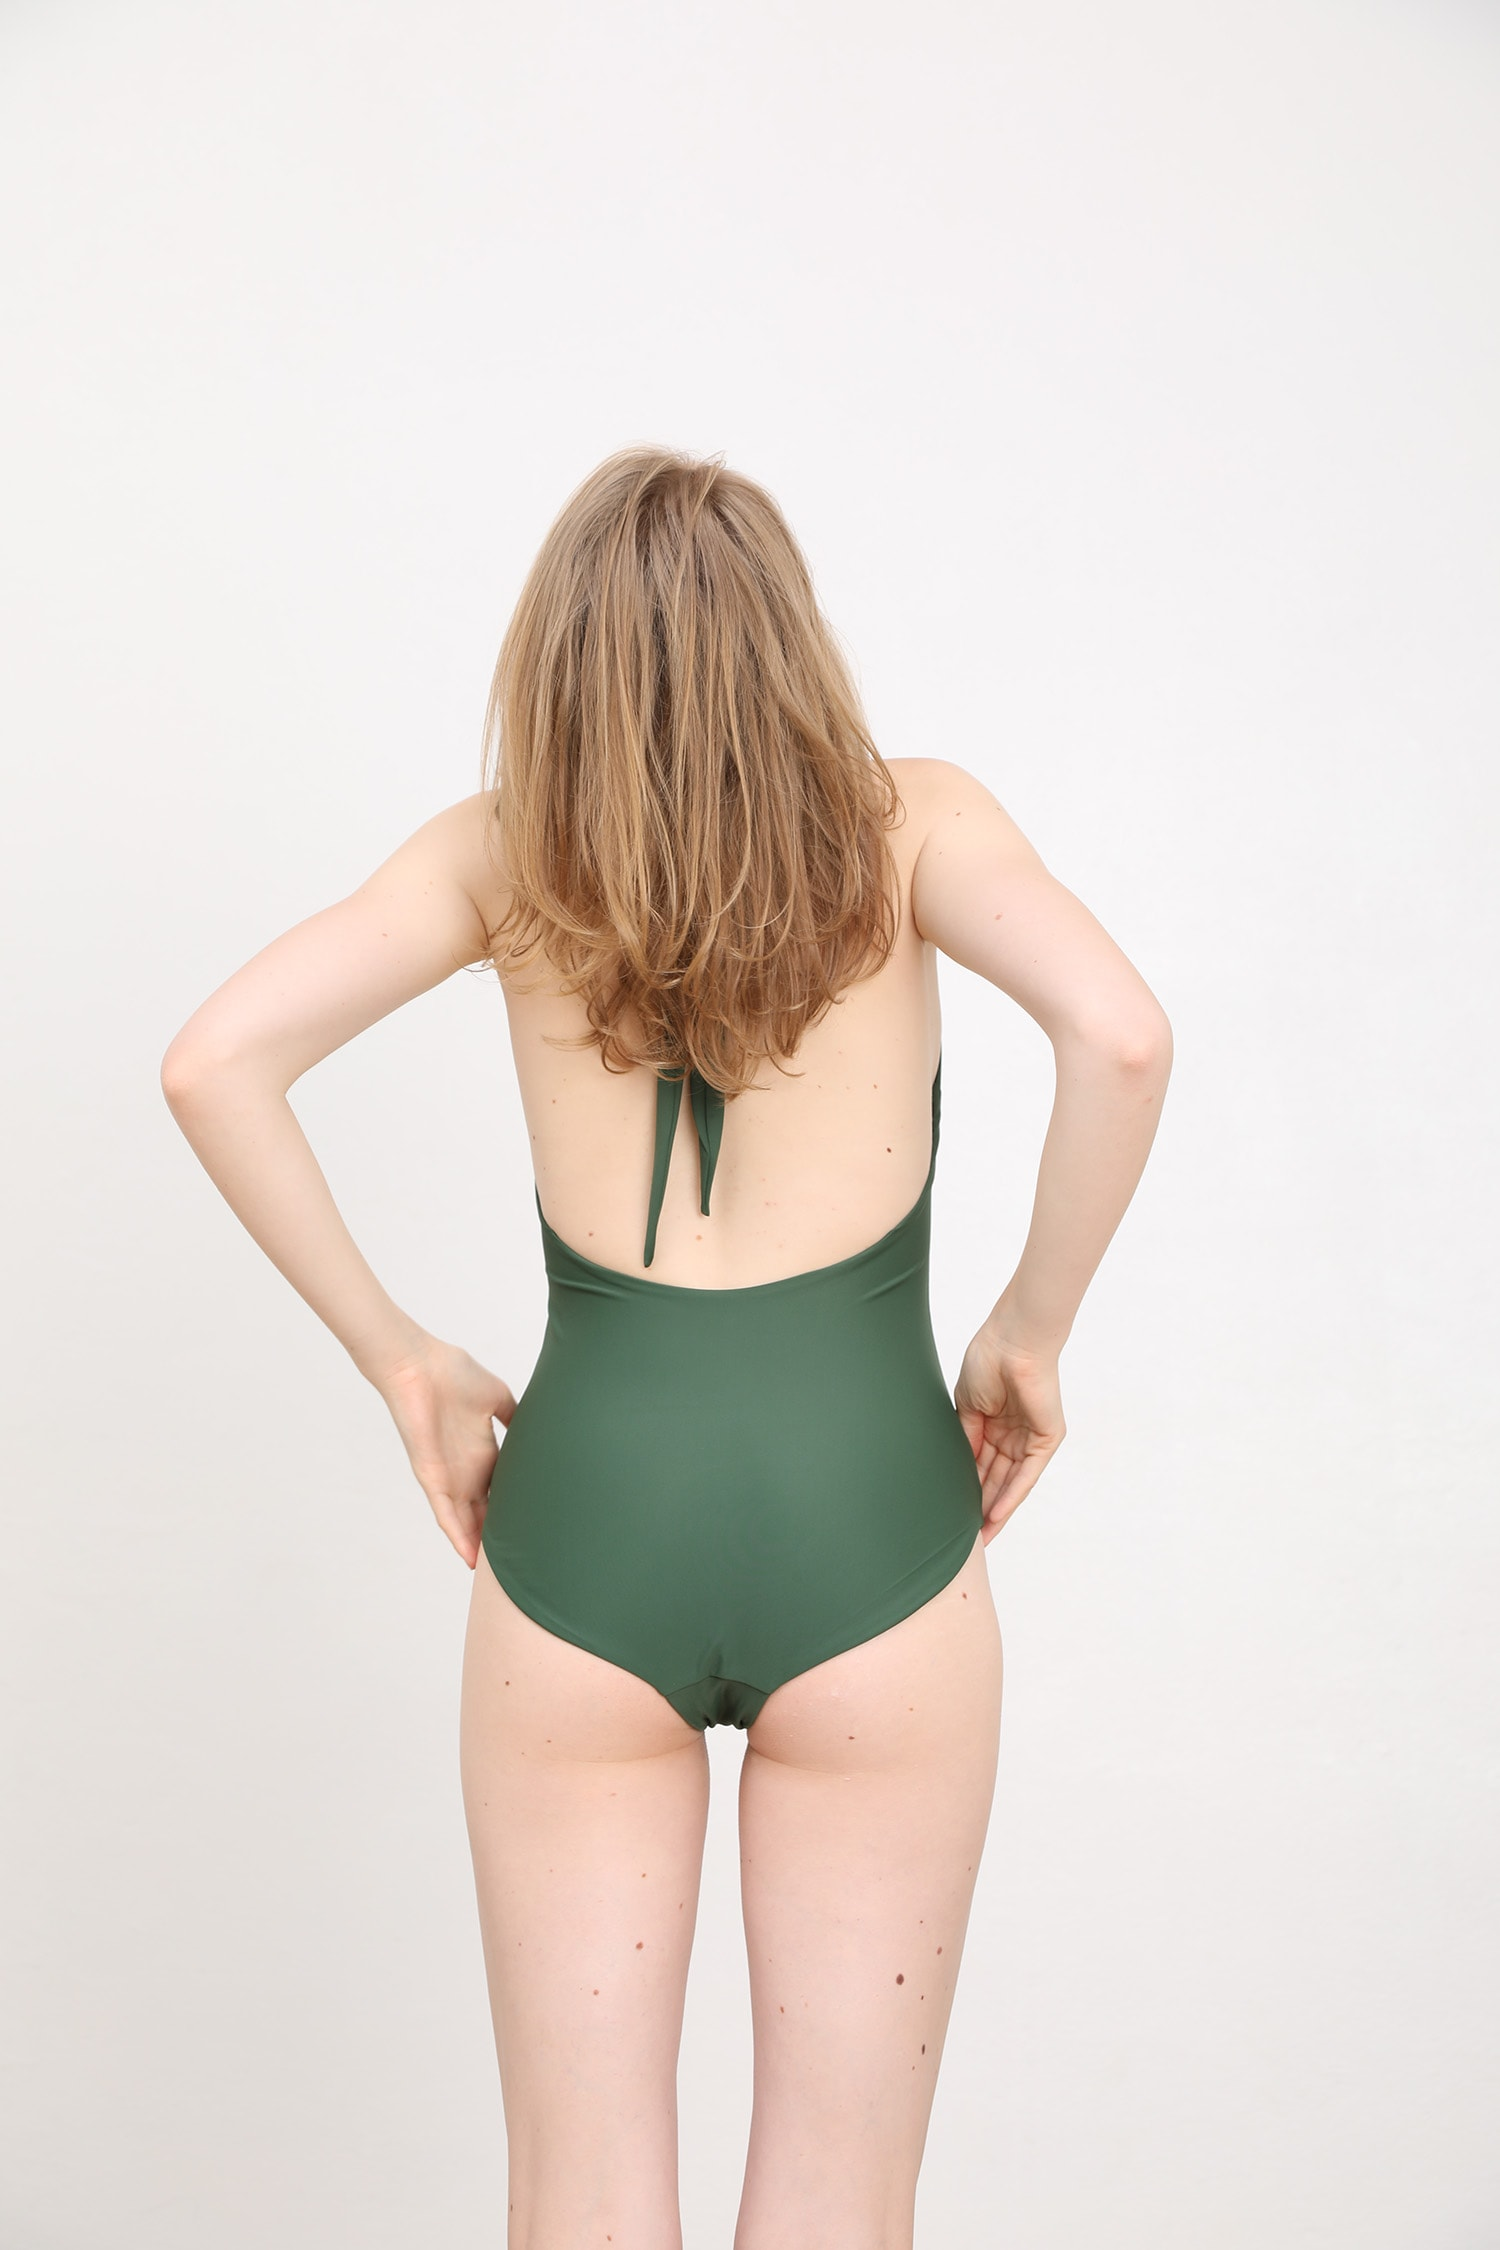 margaret and hermione_ss19_swimsuit no4_dark green_157,00eur_hinten_online